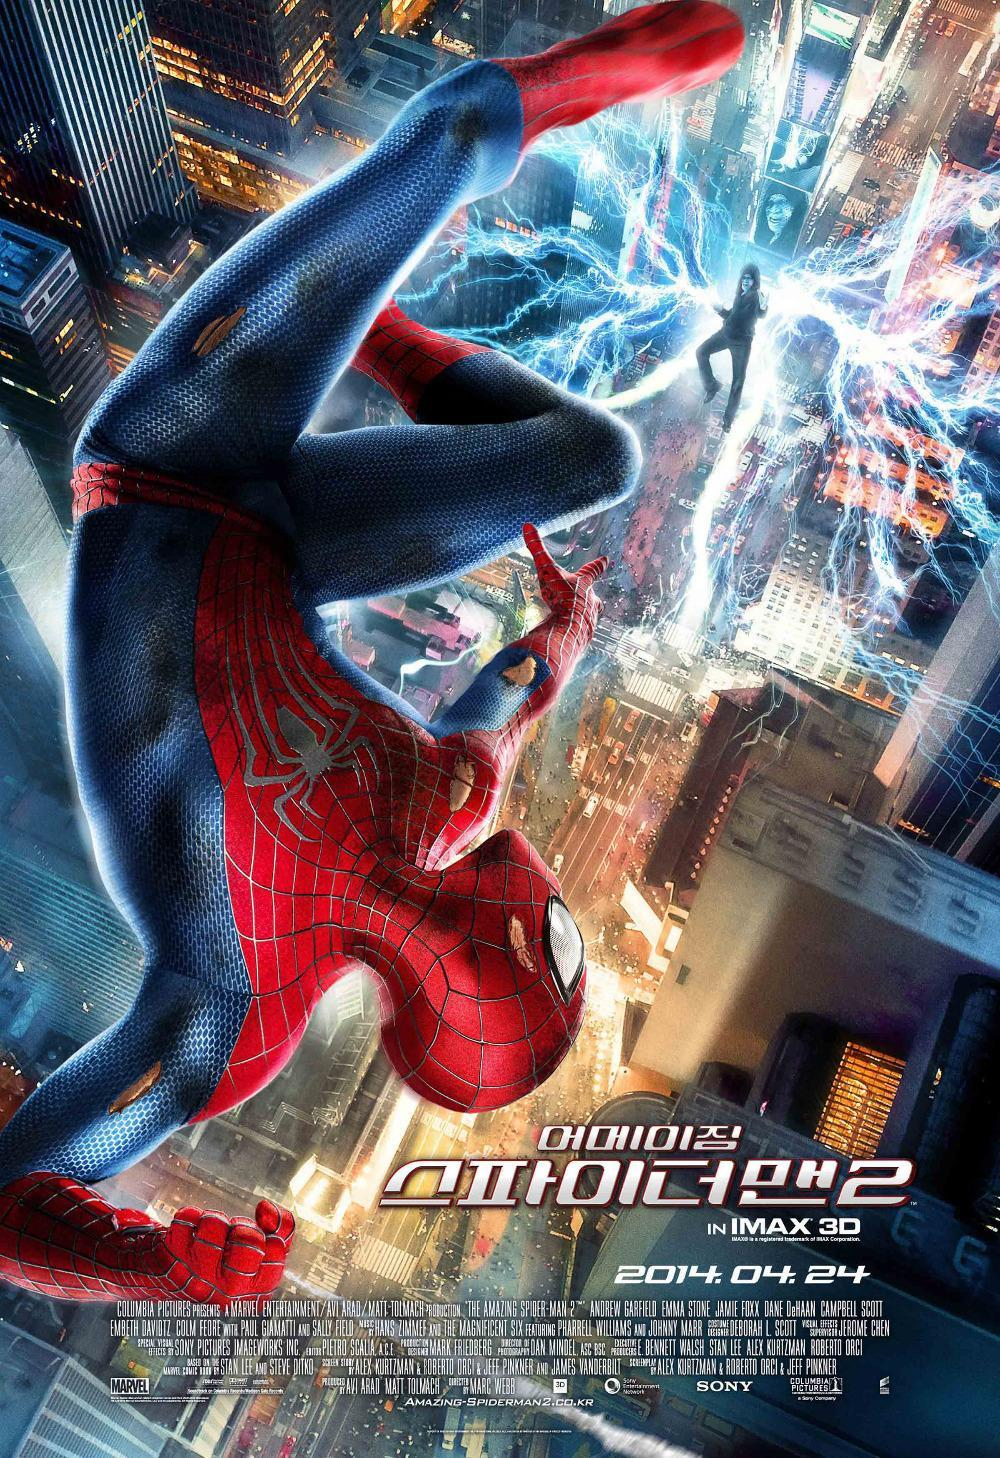 Top34 Hd Home Wallpaper The Amazing Spider Man 2 Movie Poster 02 Best Art Art Painting 60x90cm Painting Dancer Painting Wallpaperpainting Tool Aliexpress